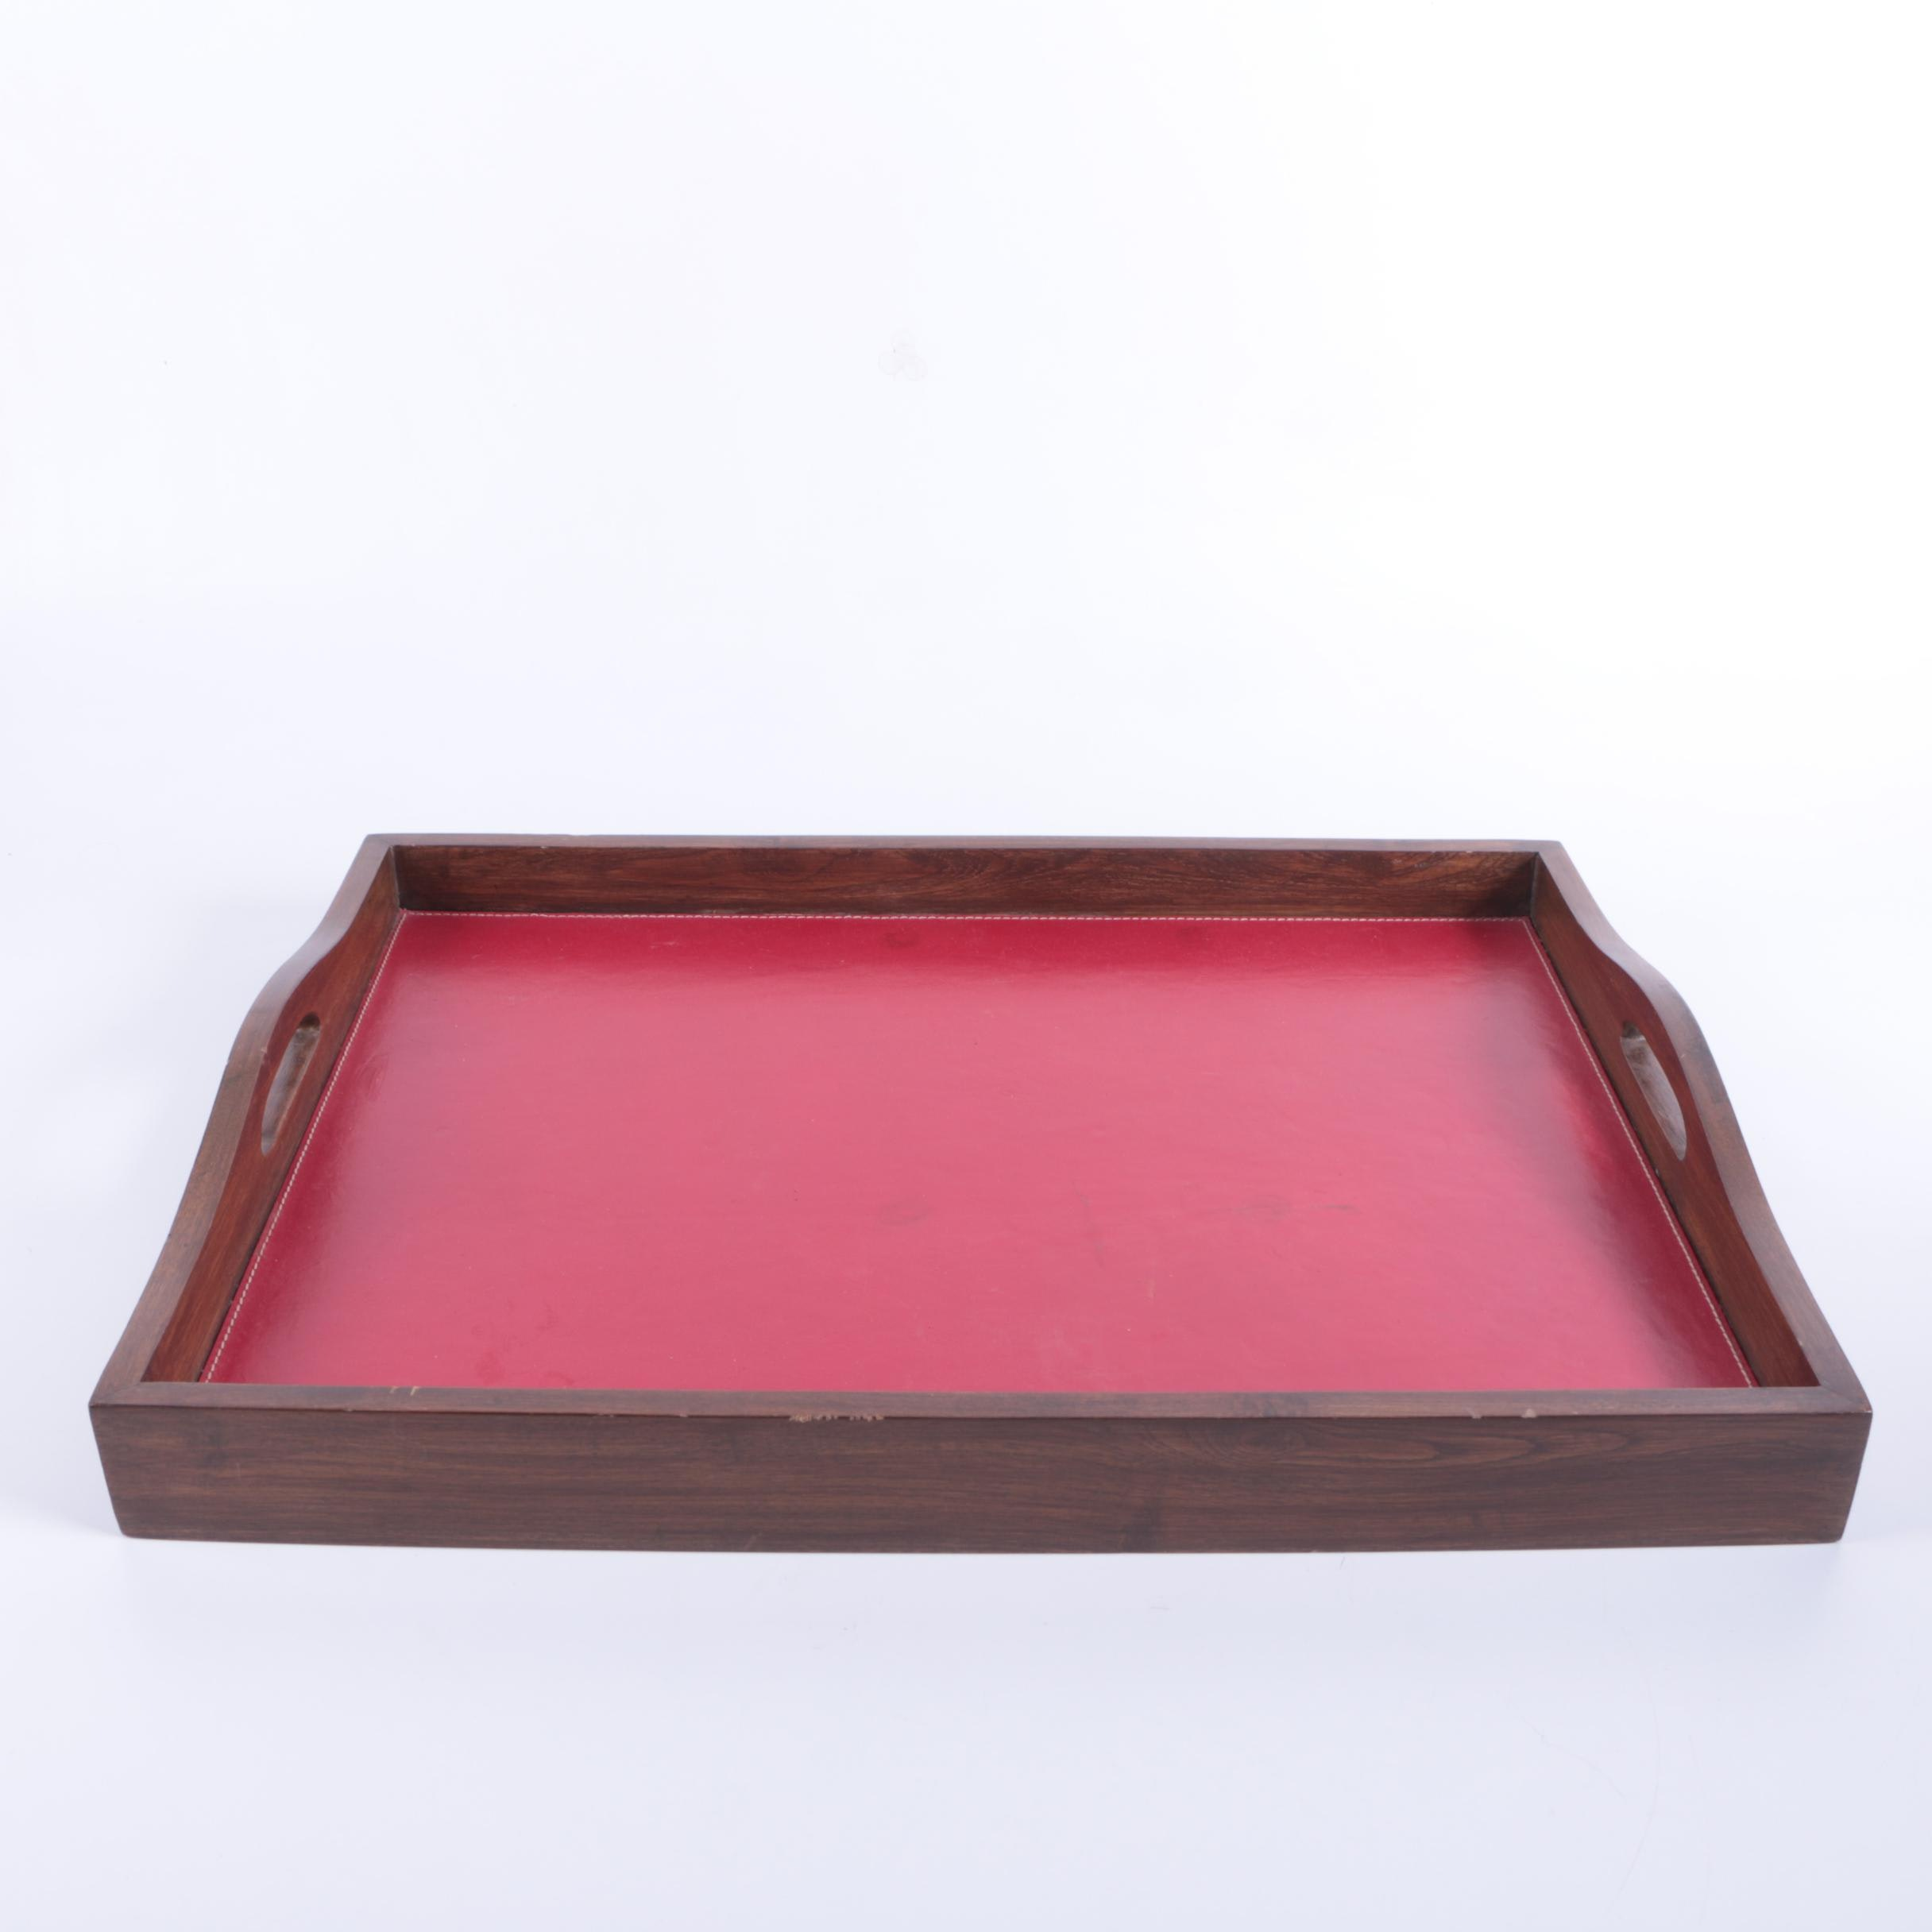 Wood and Leather Serving Tray